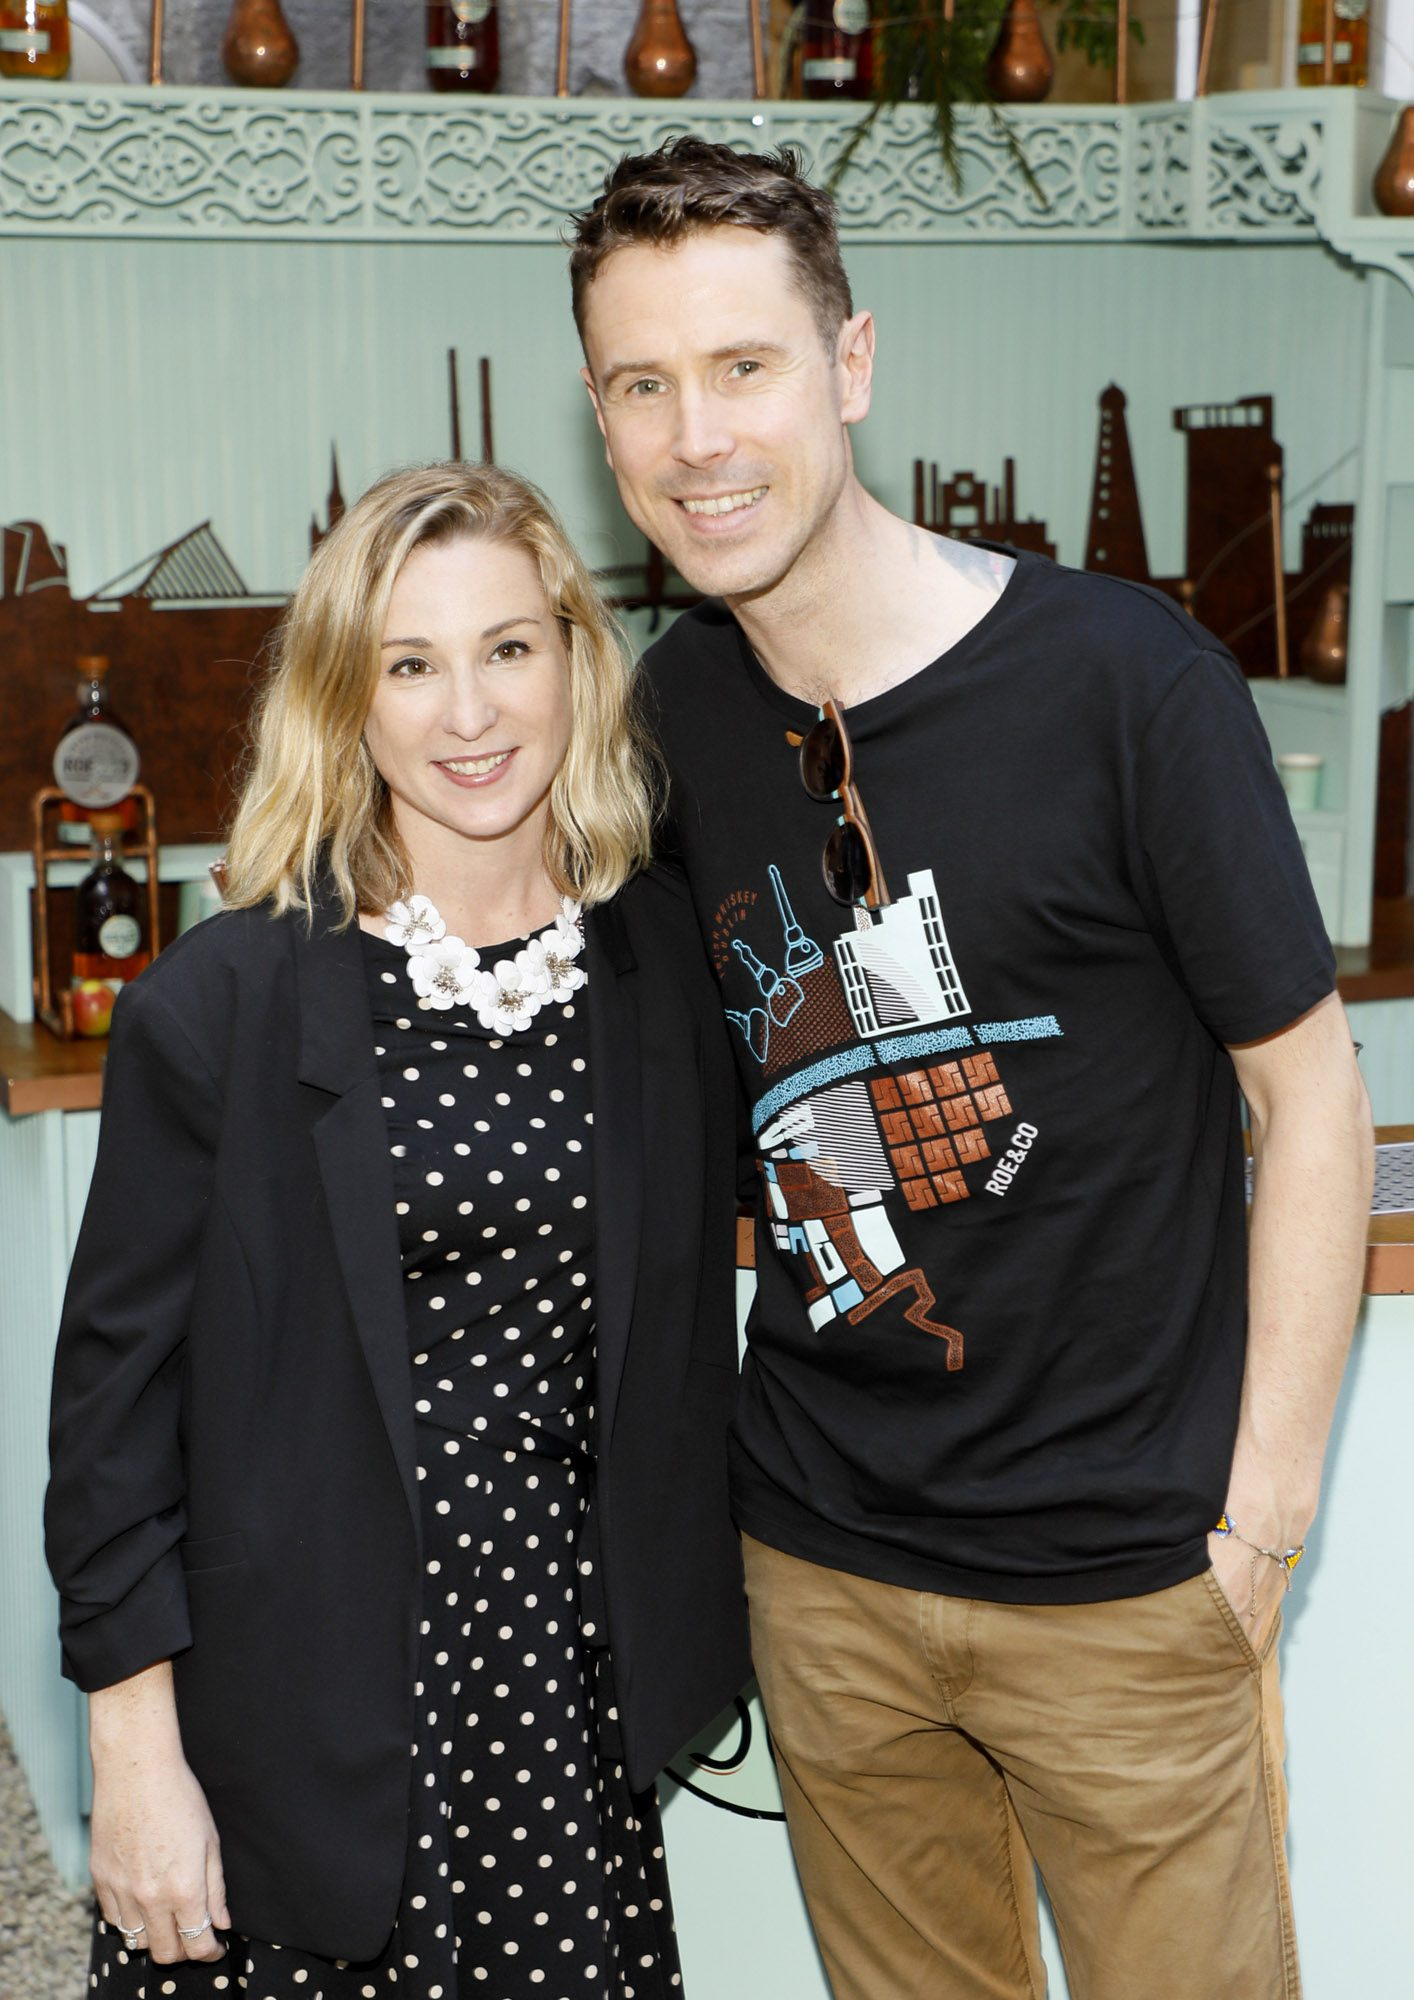 Aoife Finnegan and Nial Molloy at the launch of Taste the Island, a 12 week celebration of Ireland's seasonal ingredients, adventurous tastes and bold experiences taking place this September, October and November. Photo: Kieran Harnett